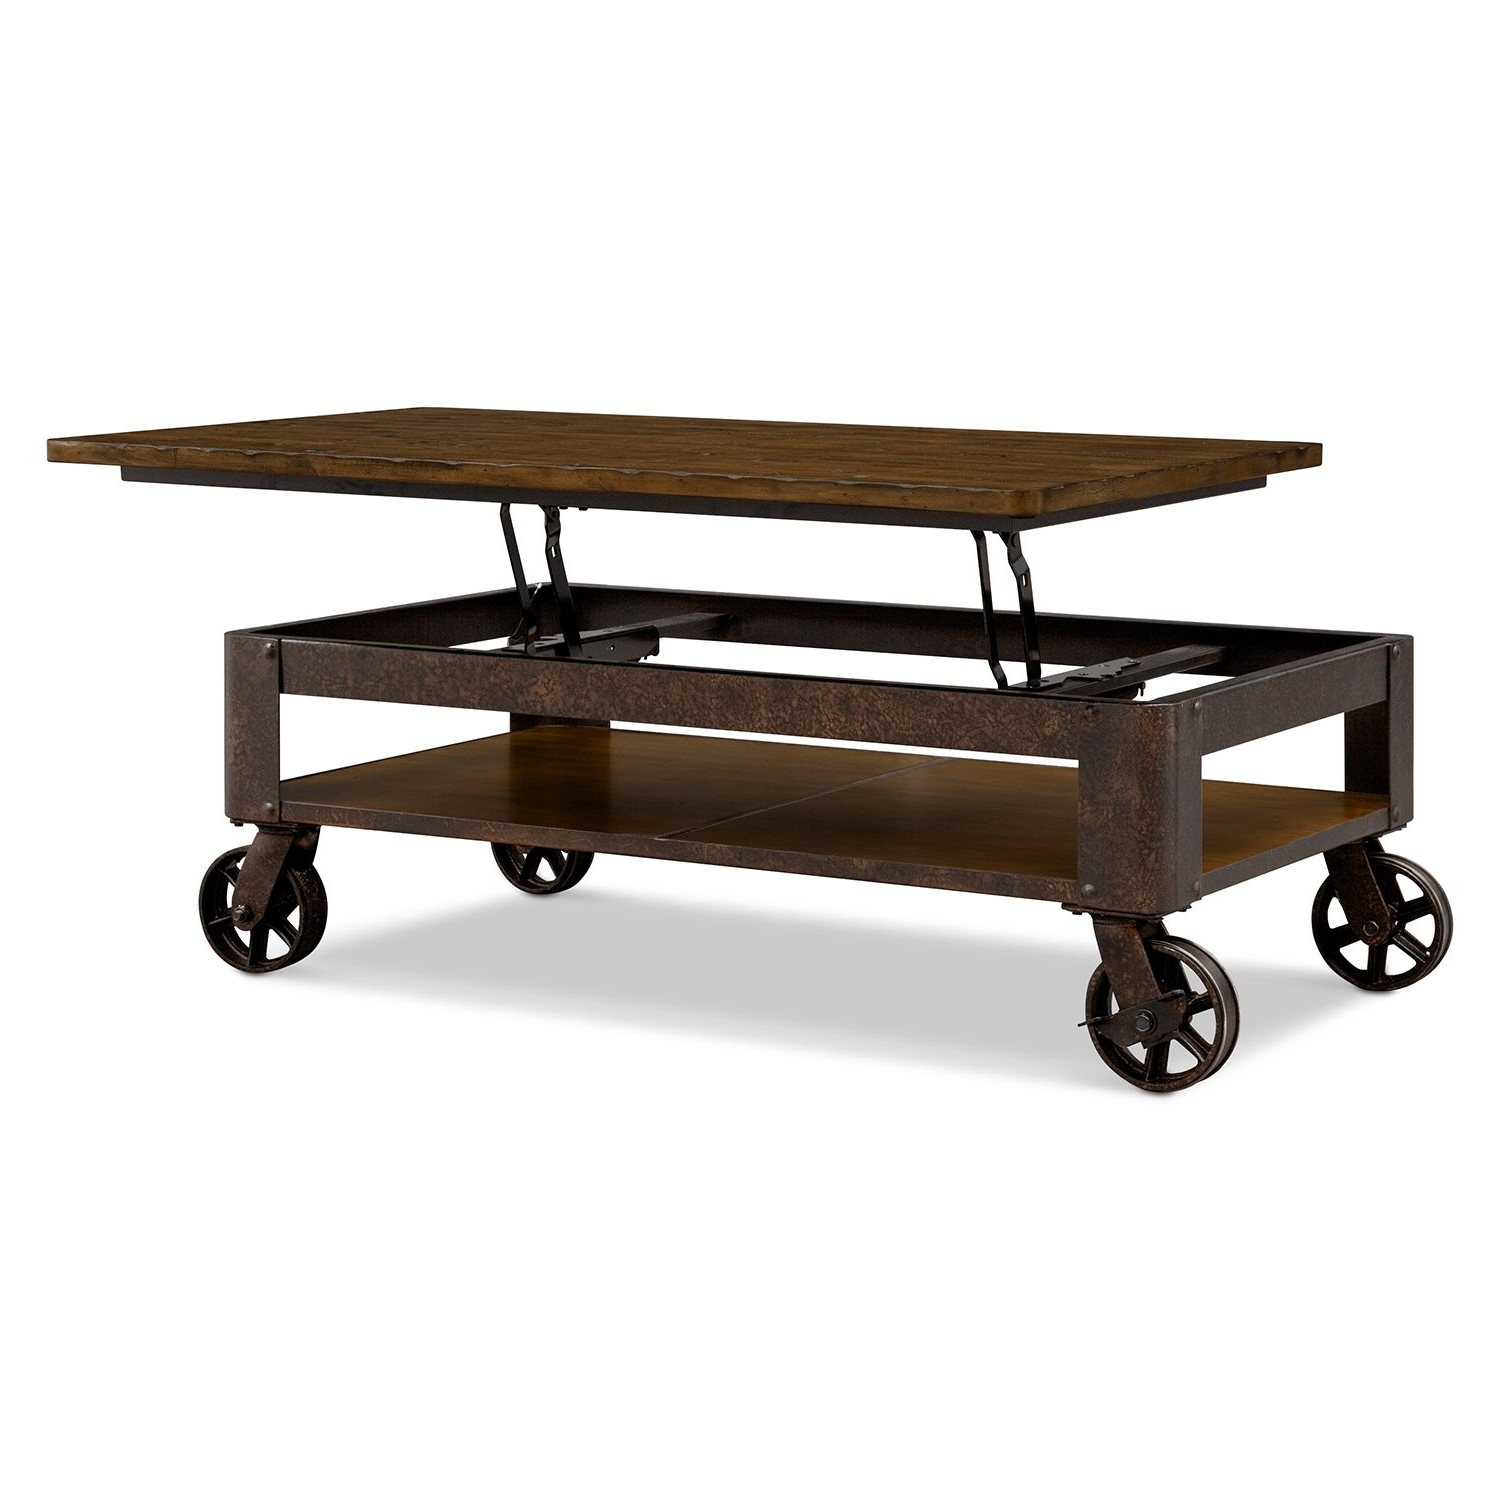 Seriously One Of My Favorite Tables Ever. It's Wonderfully Made Pertaining To Most Recently Released Grant Lift Top Cocktail Tables With Casters (Gallery 3 of 20)